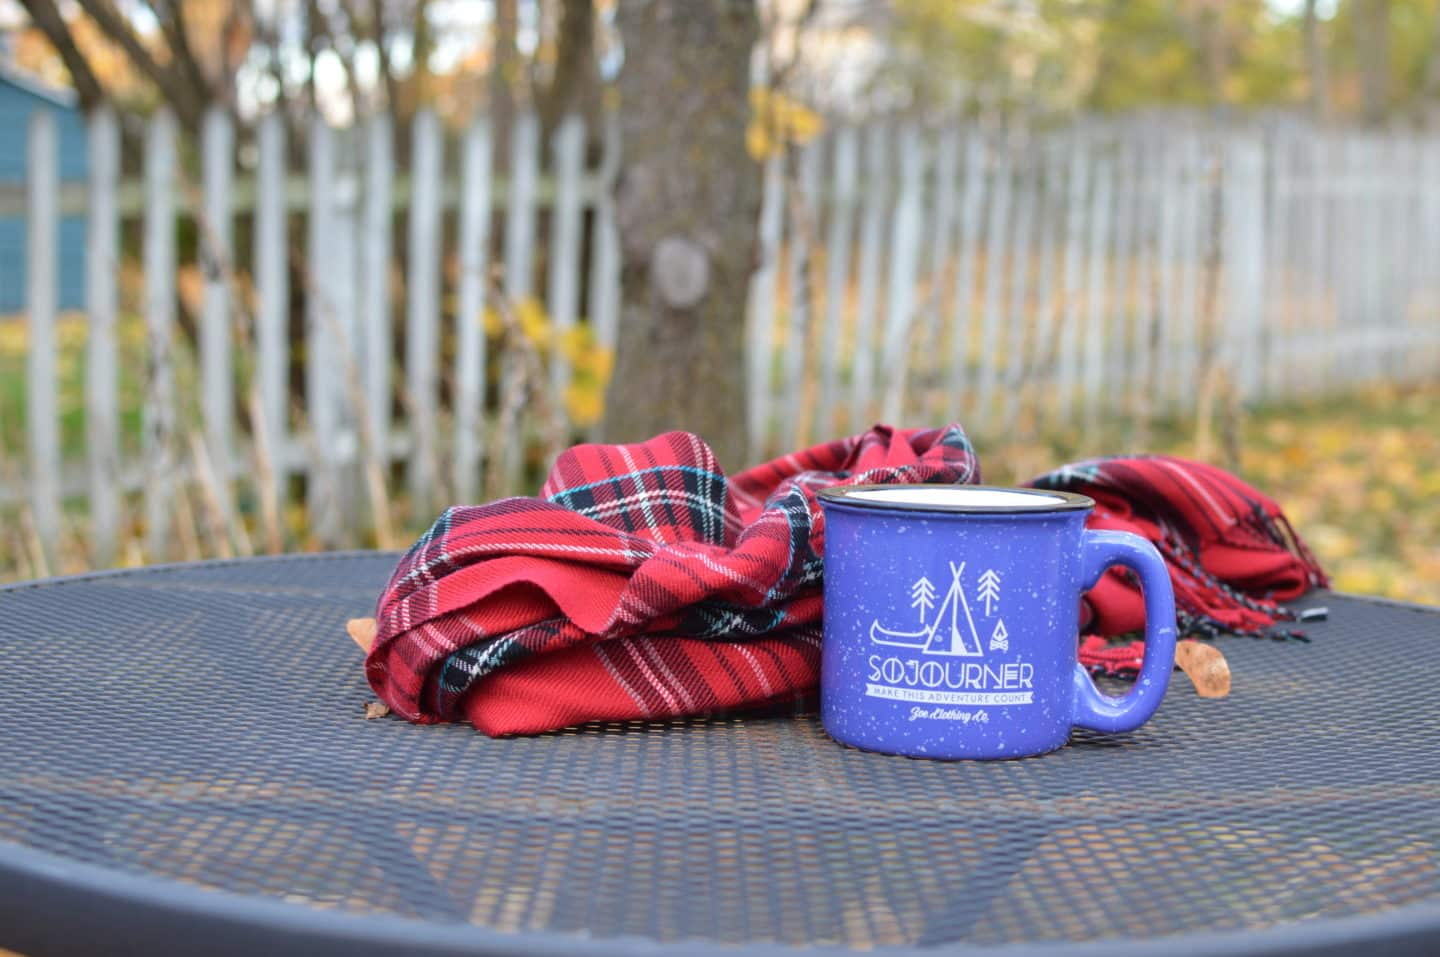 The Holiday Gift Guide for Christian Young Women